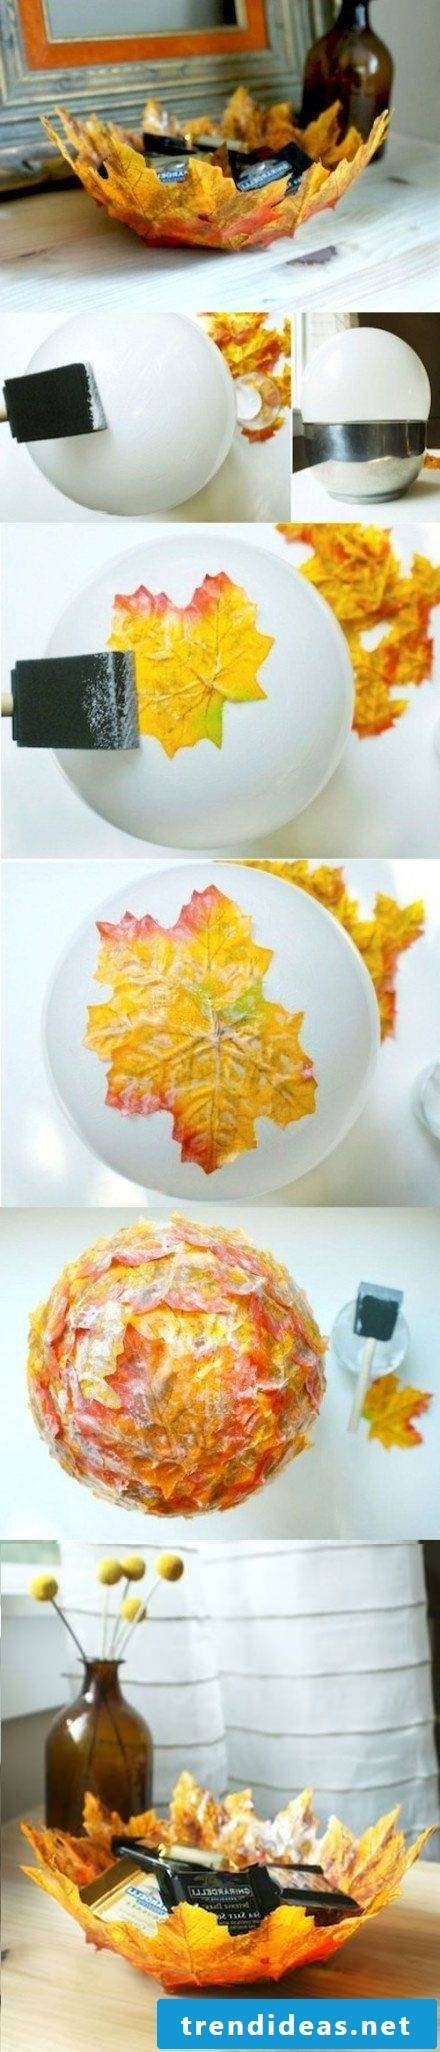 Table decoration autumn - making autumn leaves